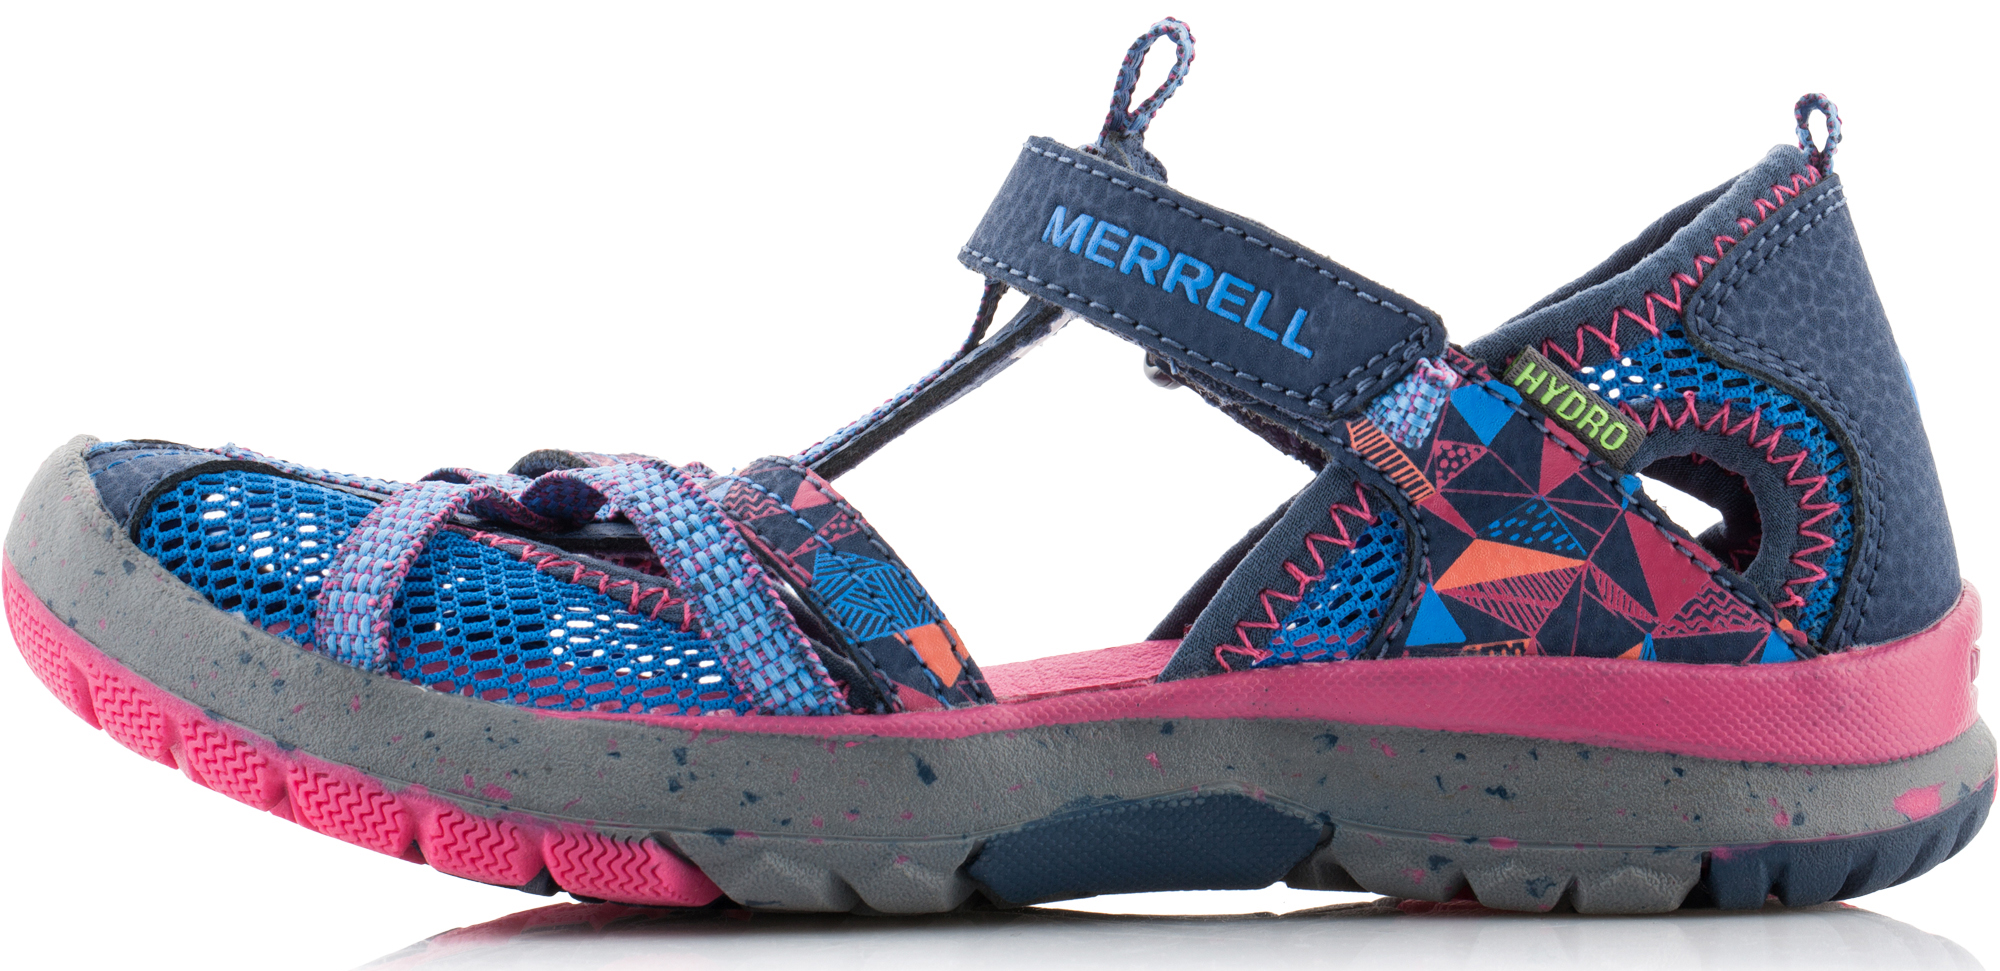 Merrell Сандалии для девочек Merrell Hydro catalog avon today tomorrow